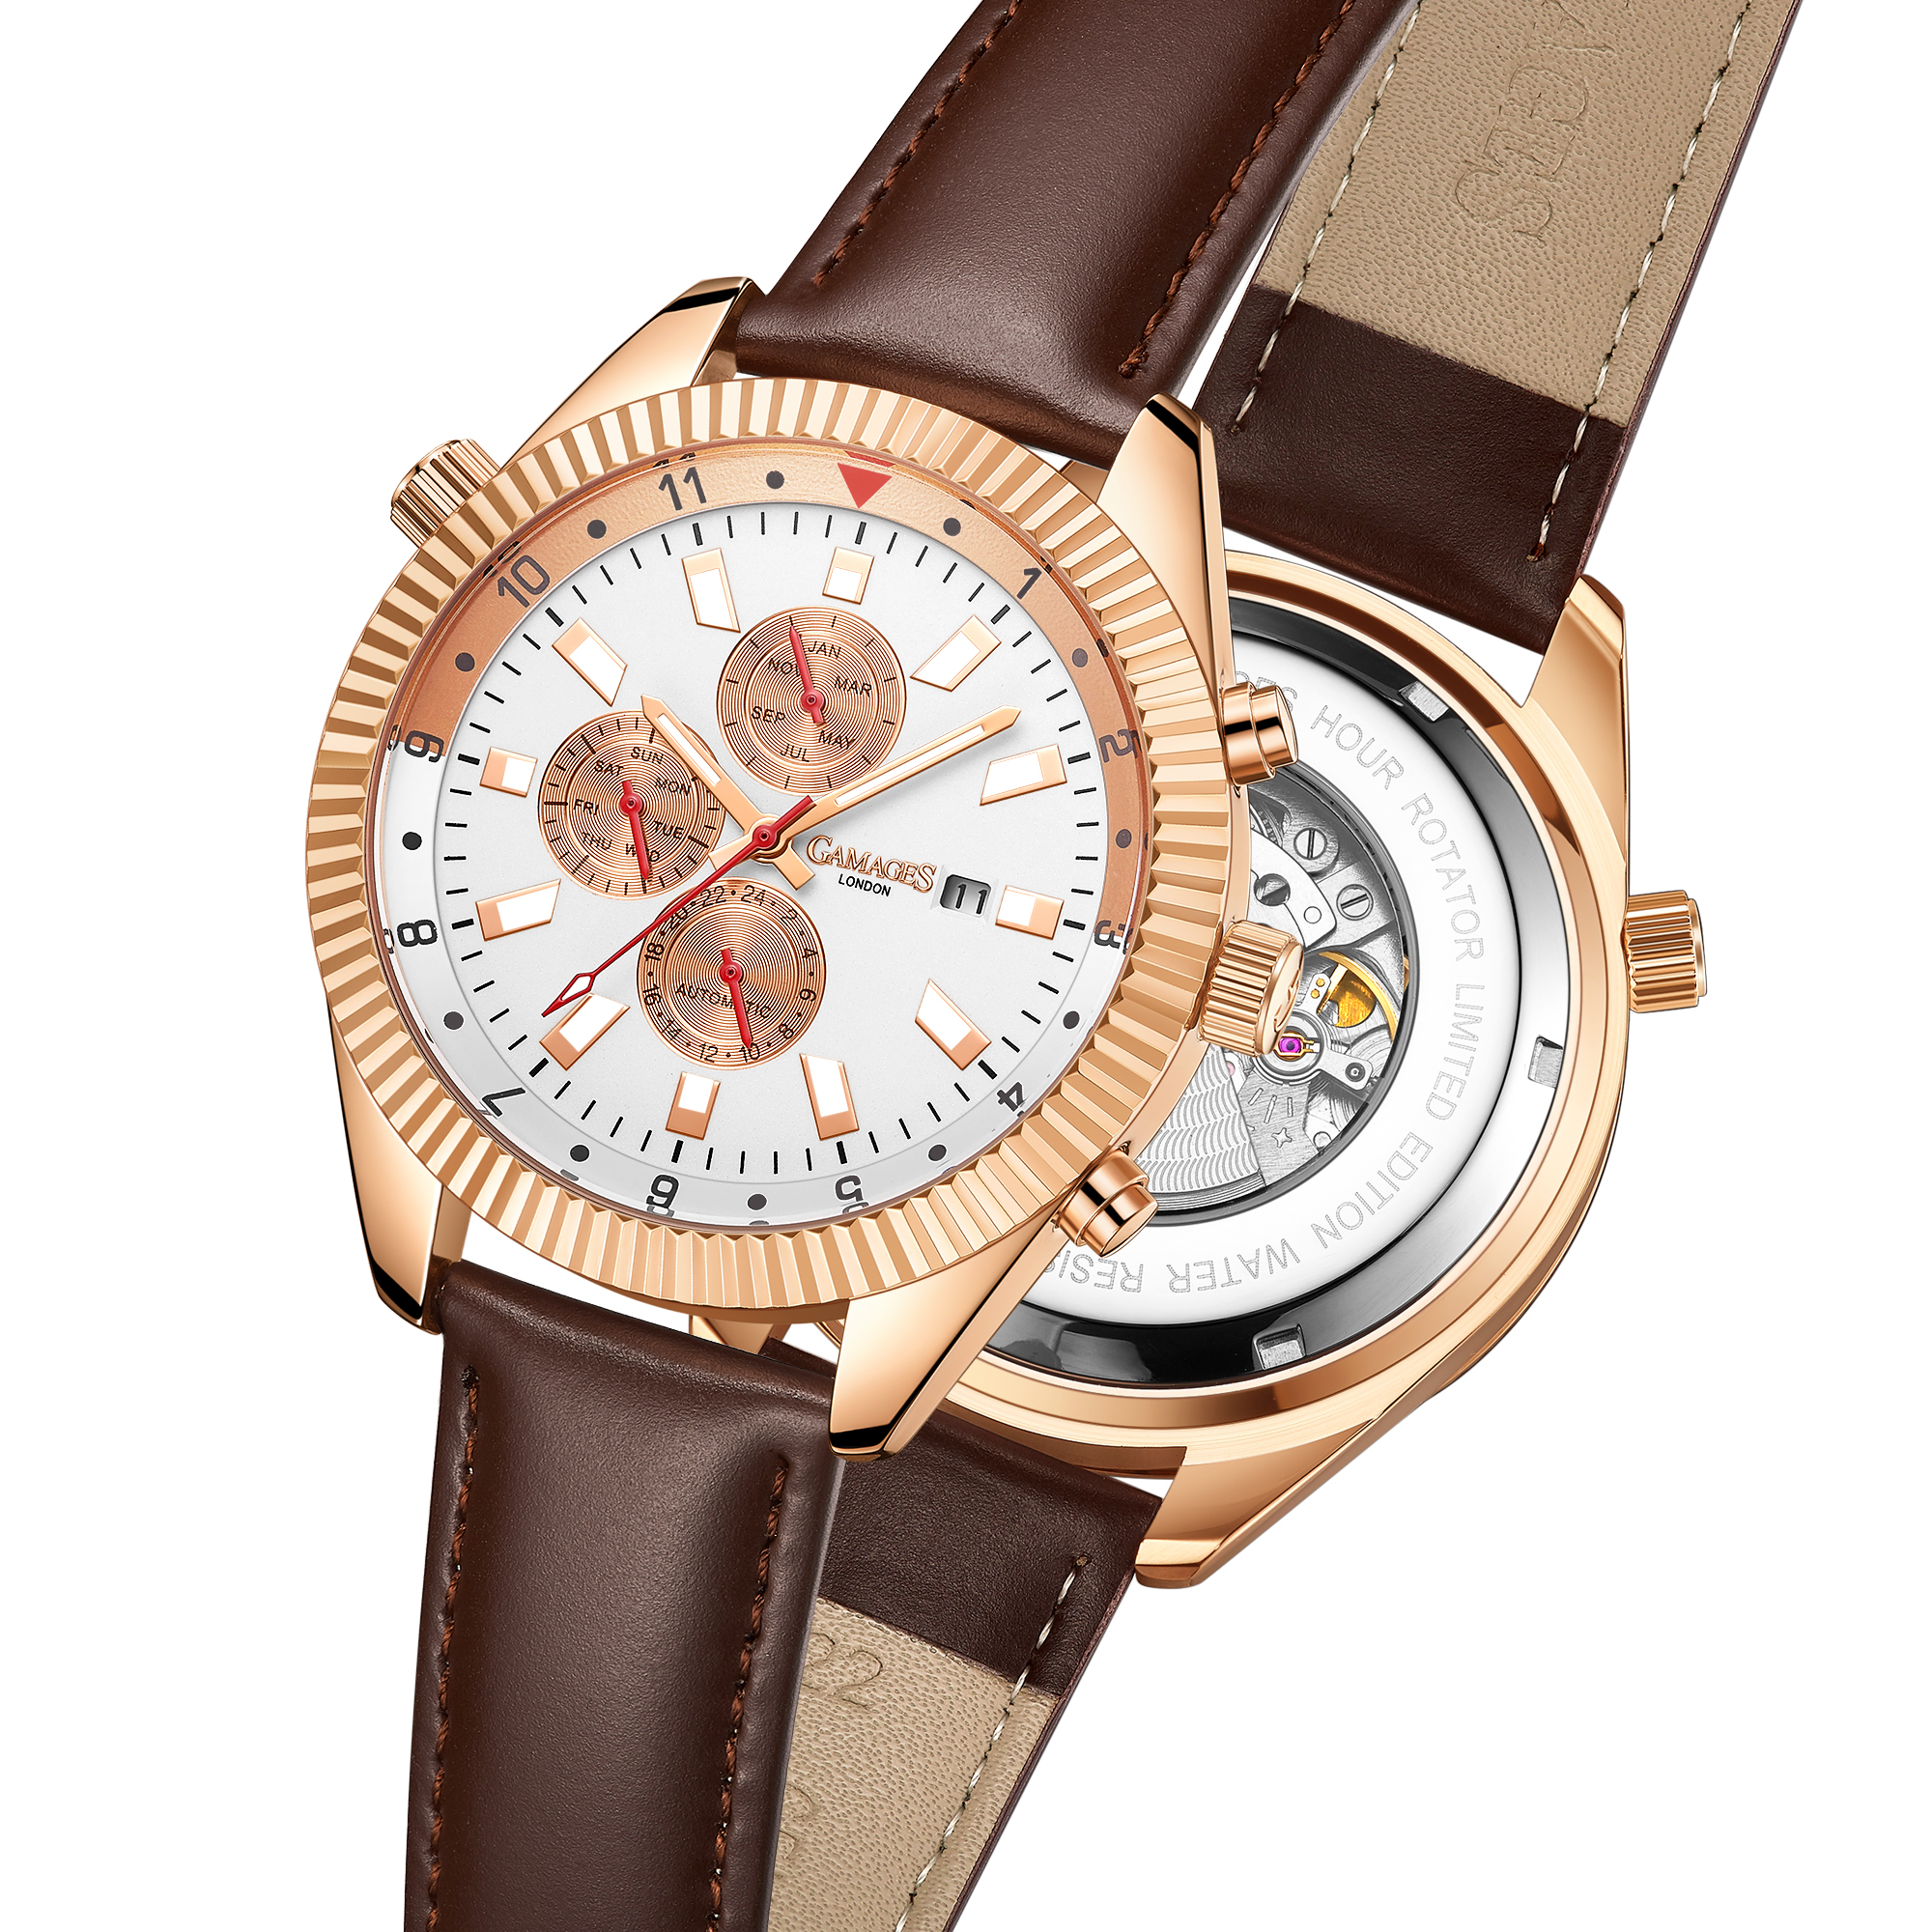 Limited Edition Hand Assembled GAMAGES Hour Rotator Automatic Rose – 5 Year Warranty & Free Delivery - Image 5 of 5